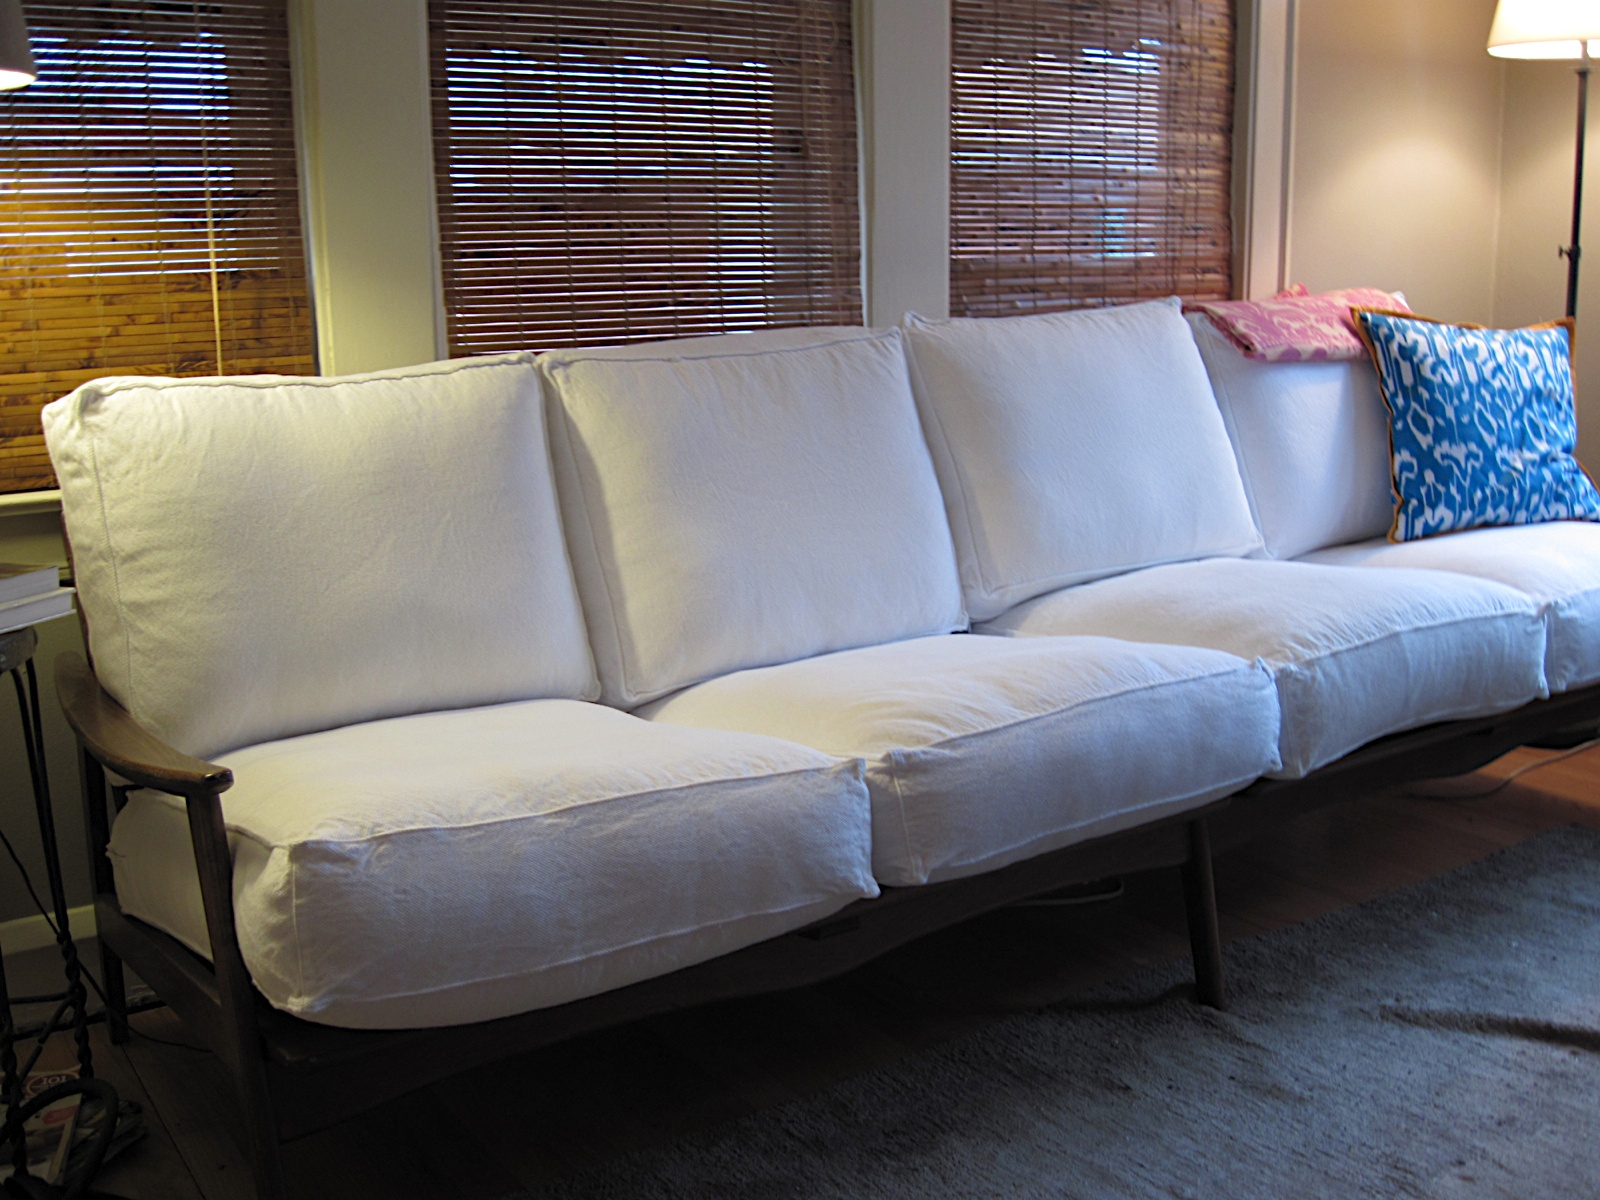 Ikea Lillberg Bettsofa Breathing New Life Into An Old Wood Frame Couch Bungalow Bungahigh